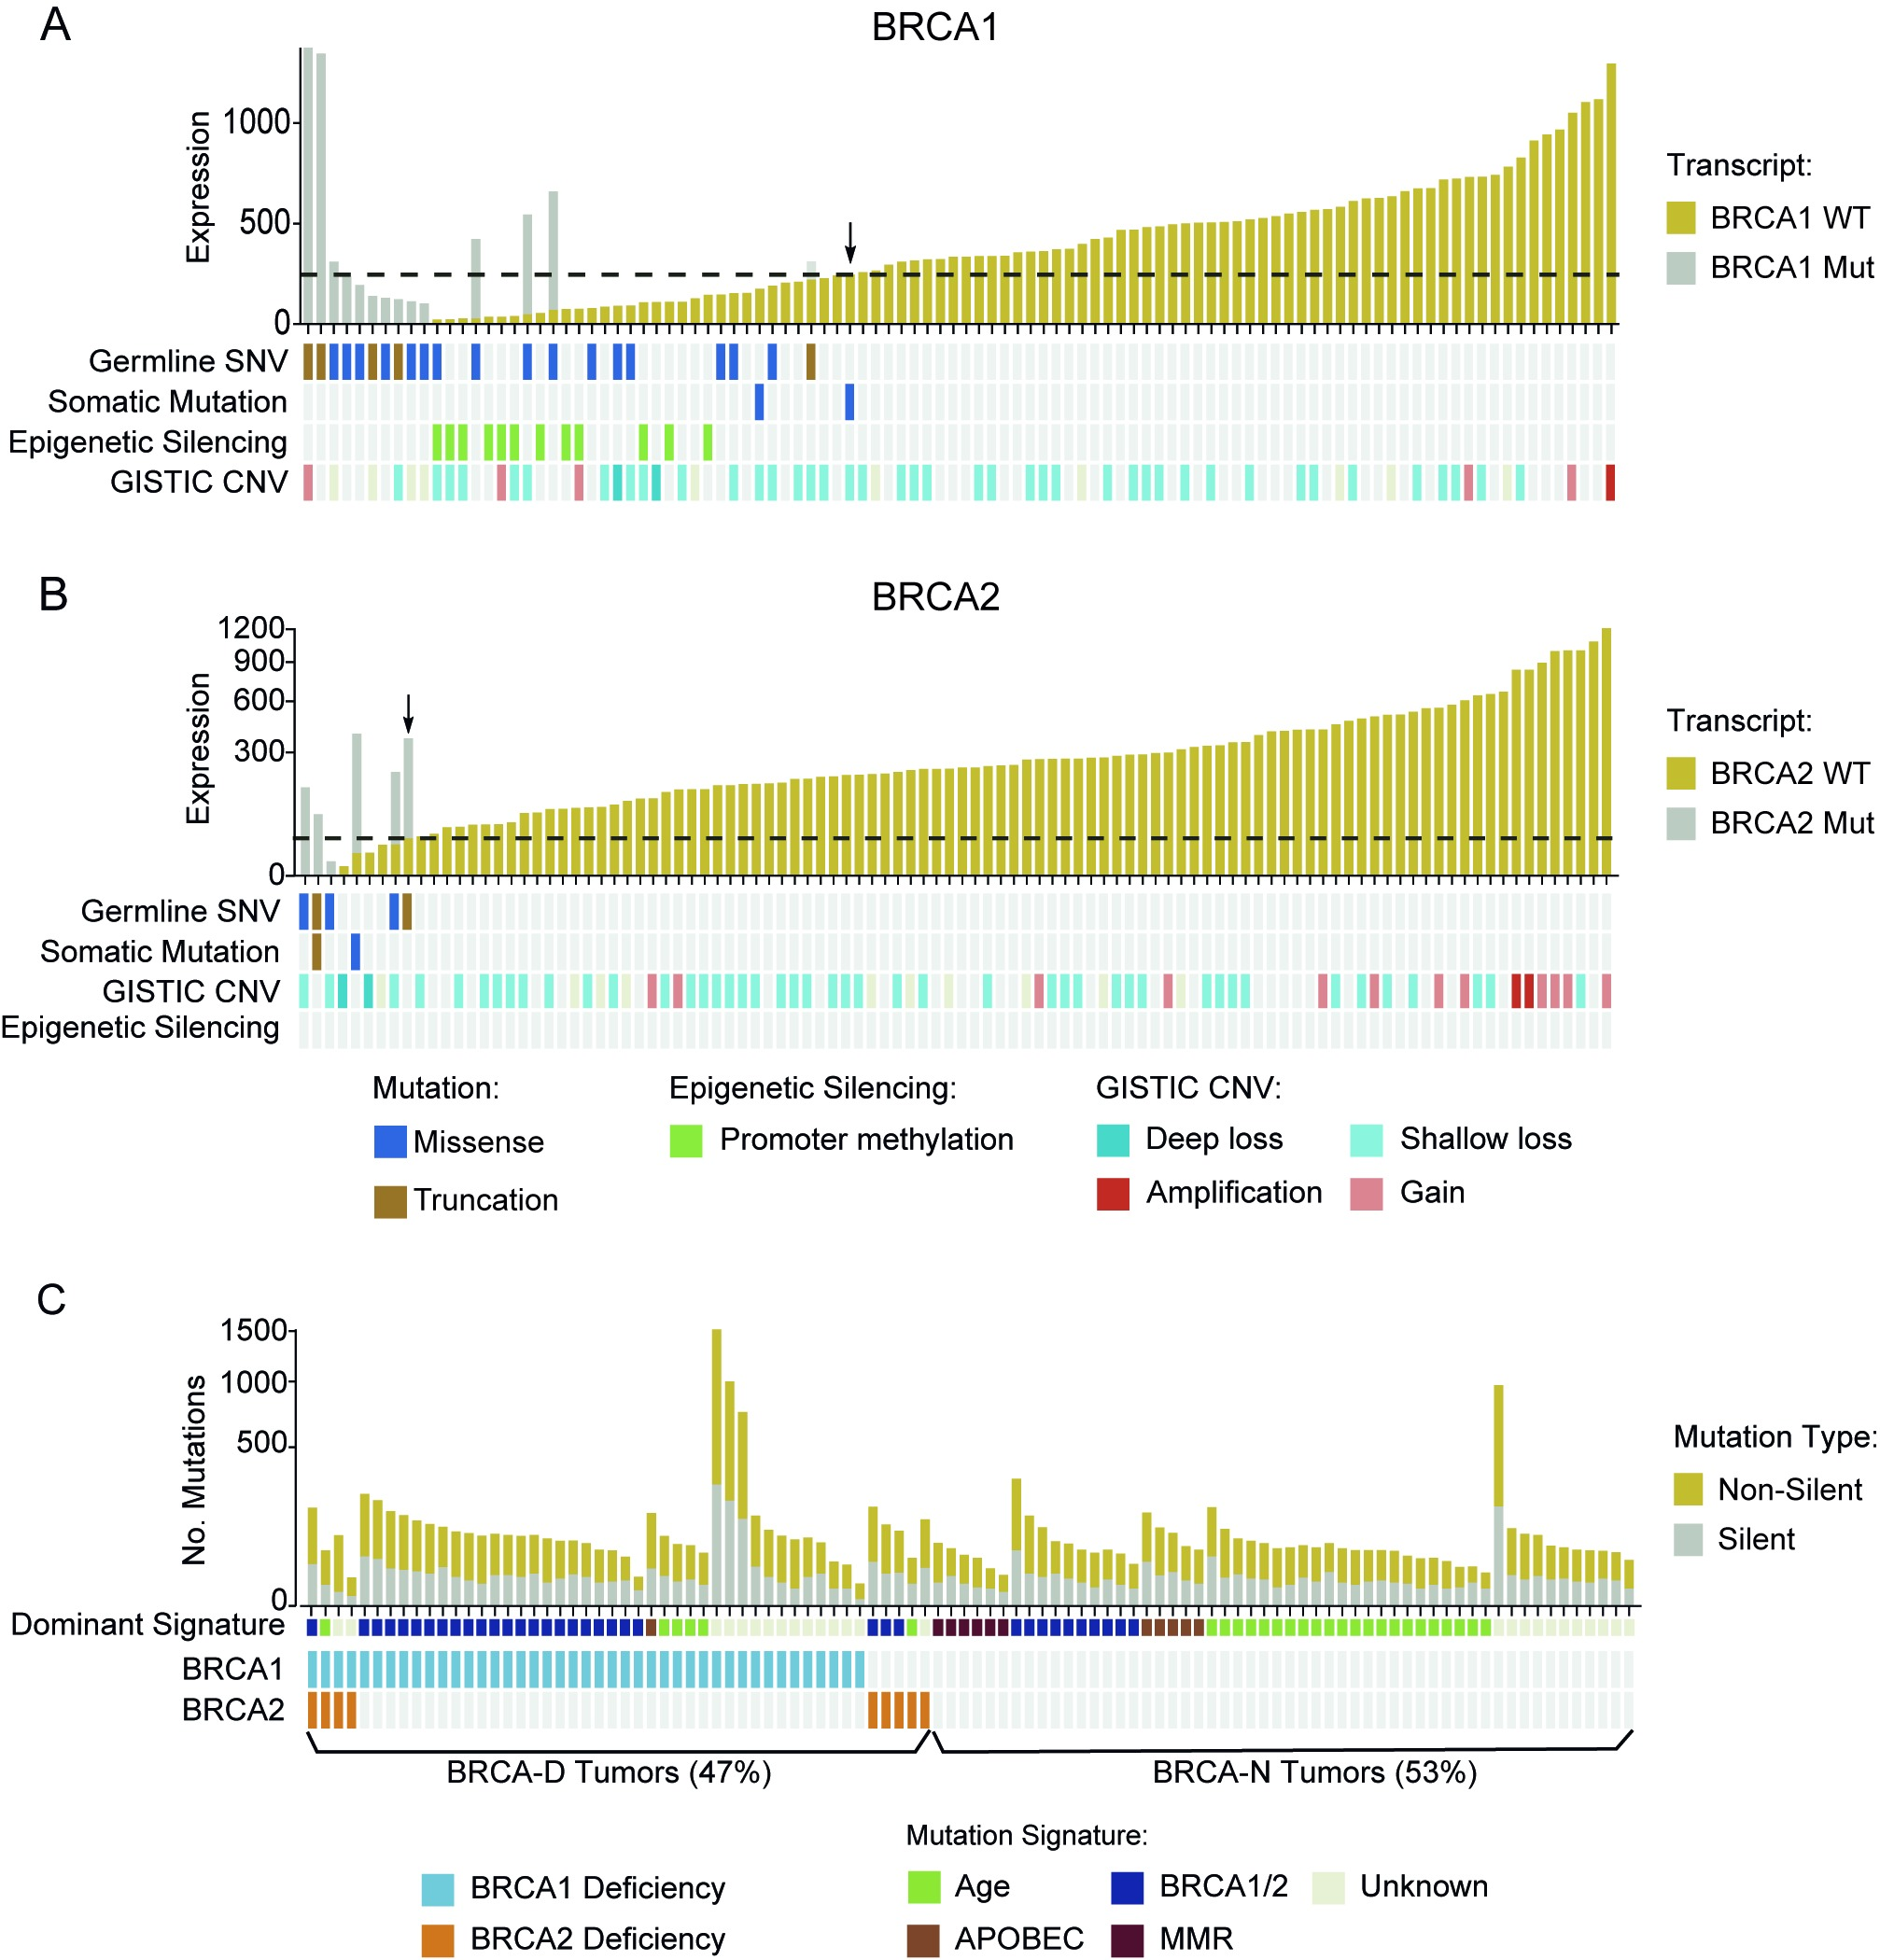 BRCA deficiency characterized by low wild-type transcript abundance defines a unique subtype of triple negative breast cancer.